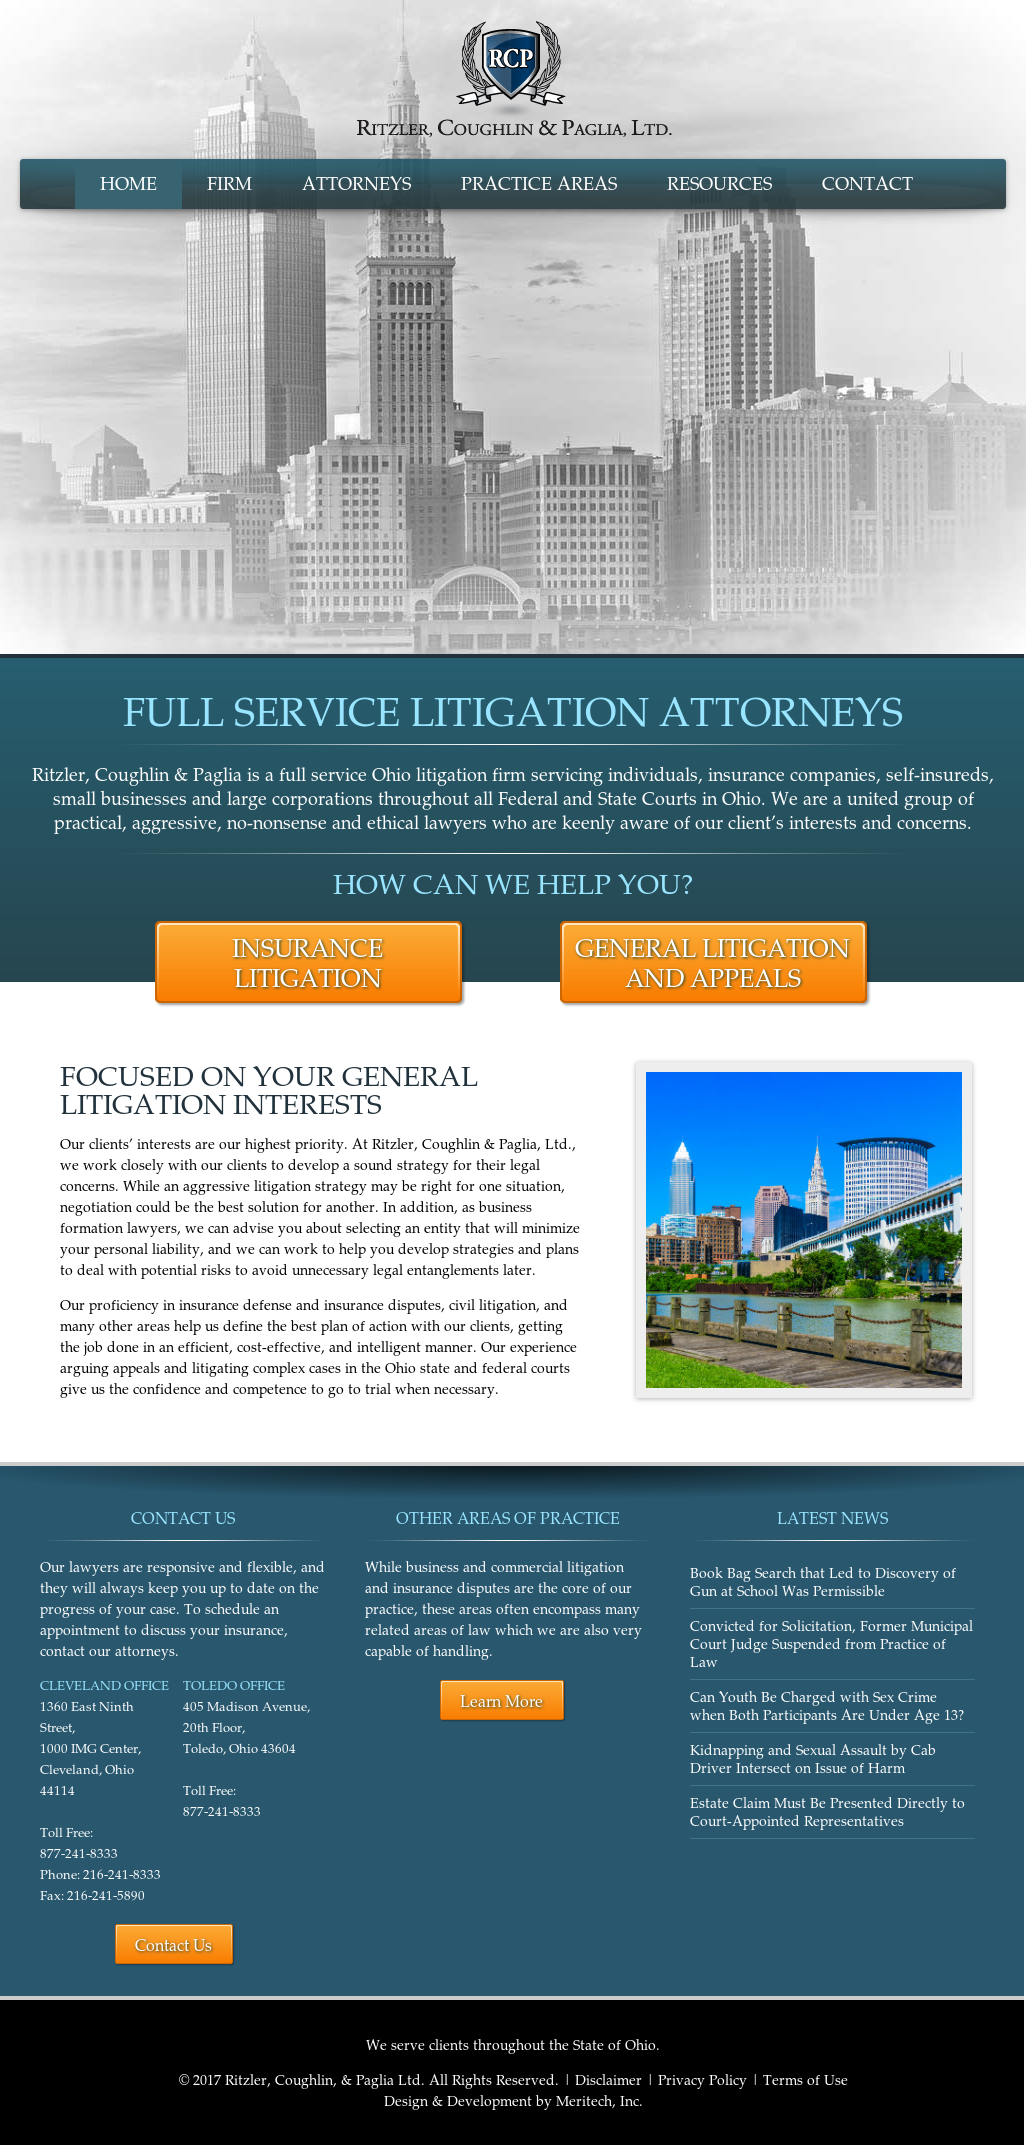 Rcp Attorneys Competitors, Revenue and Employees - Owler Company Profile